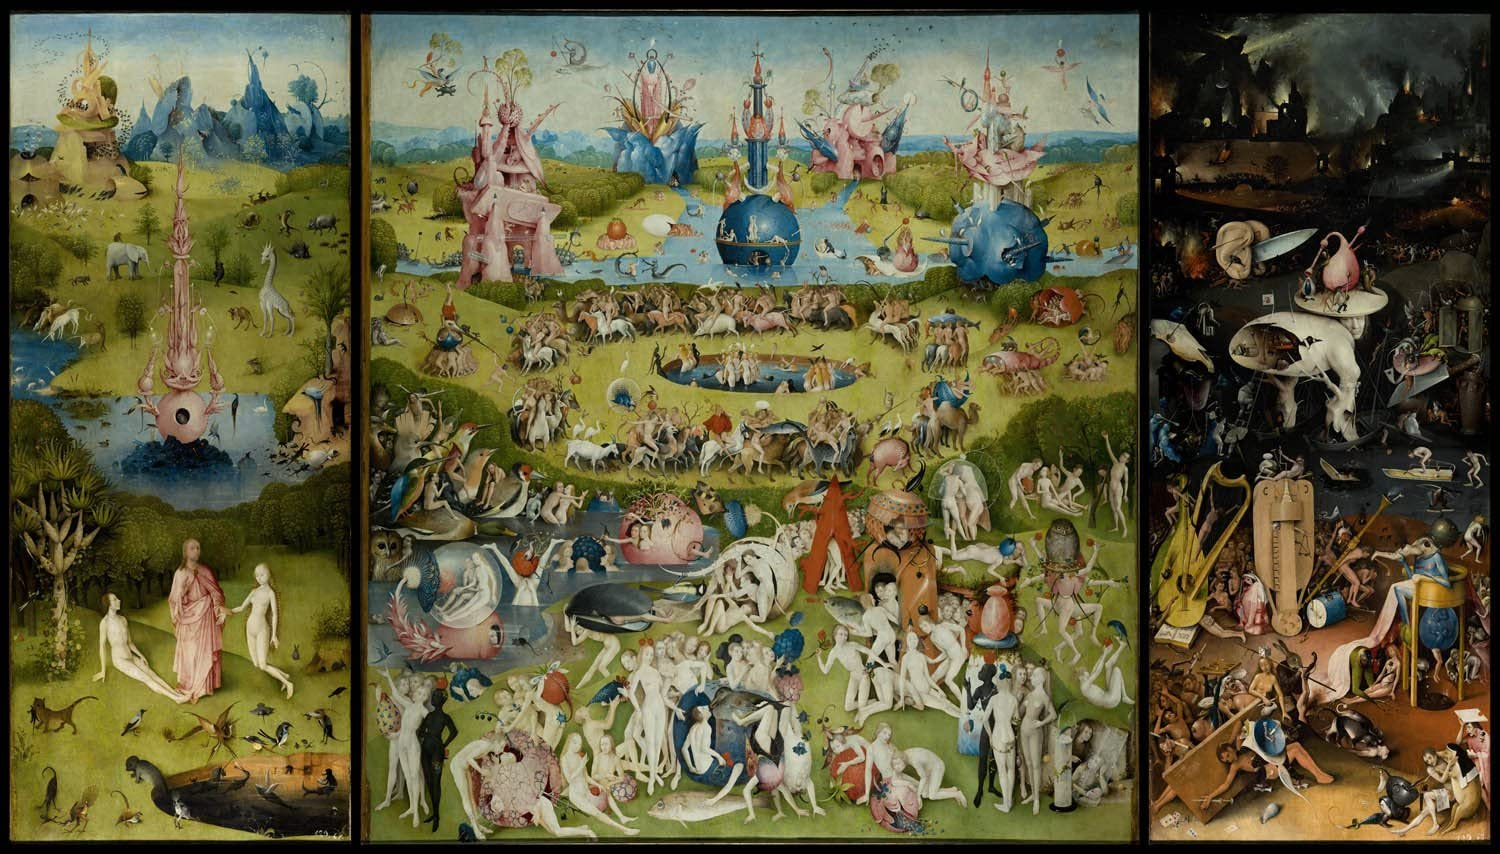 """VintPrint Paintings Poster - The Garden of Earthly Delights by Bosch (High Resolution), 24""""x41.5"""", Gloss Finish"""